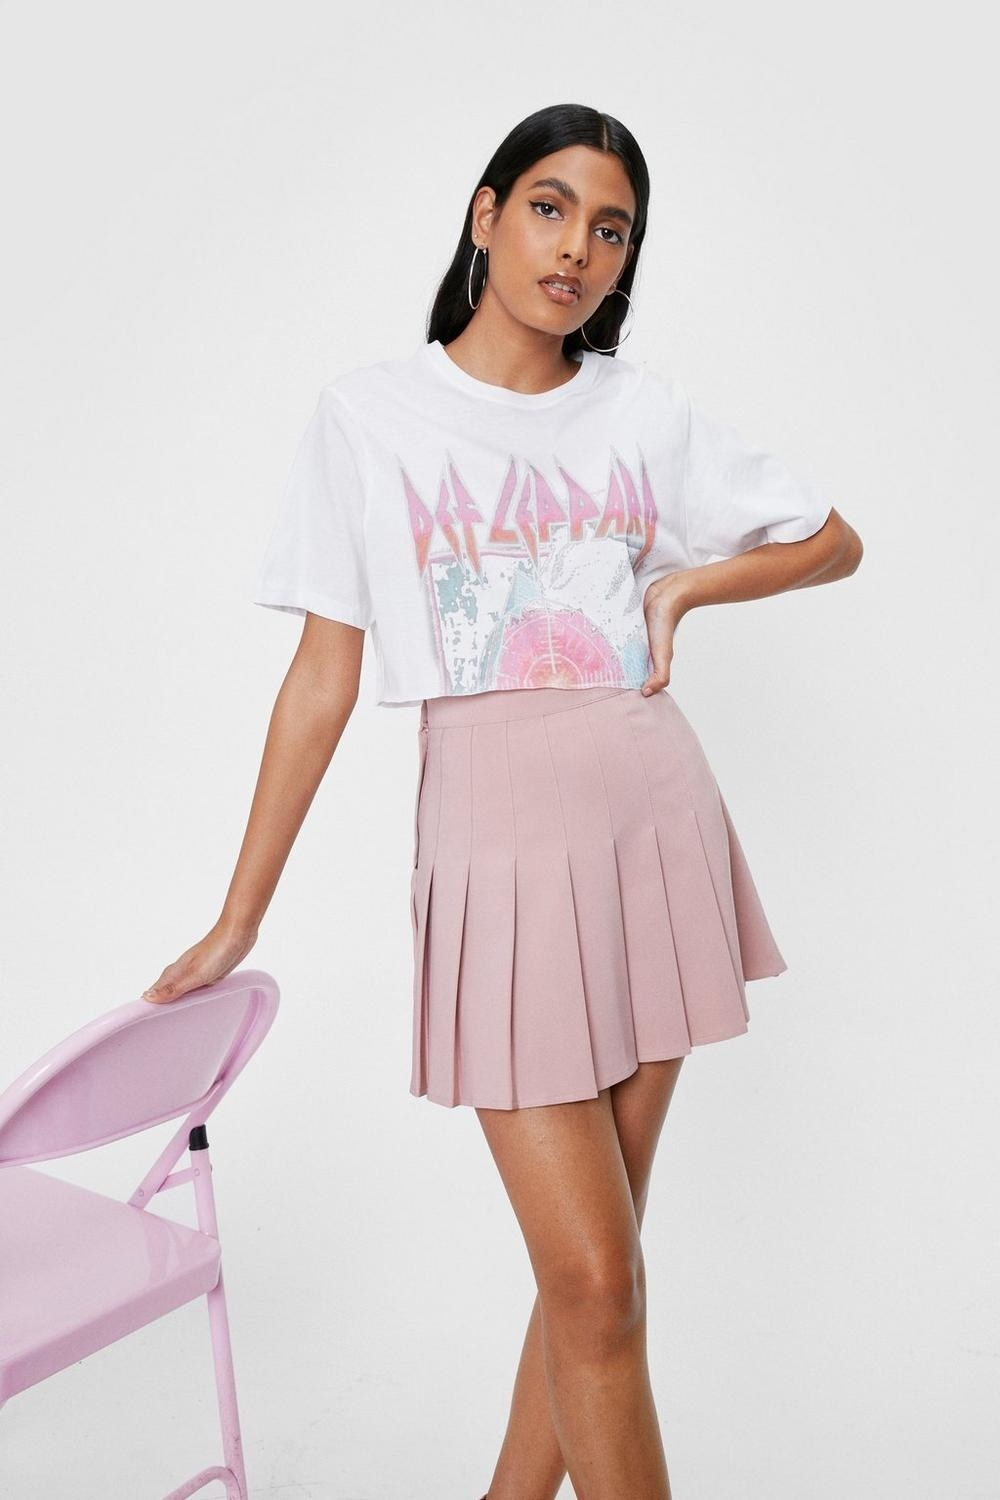 a model in a pink high waisted pleated skirt and a def leppard cropped tee